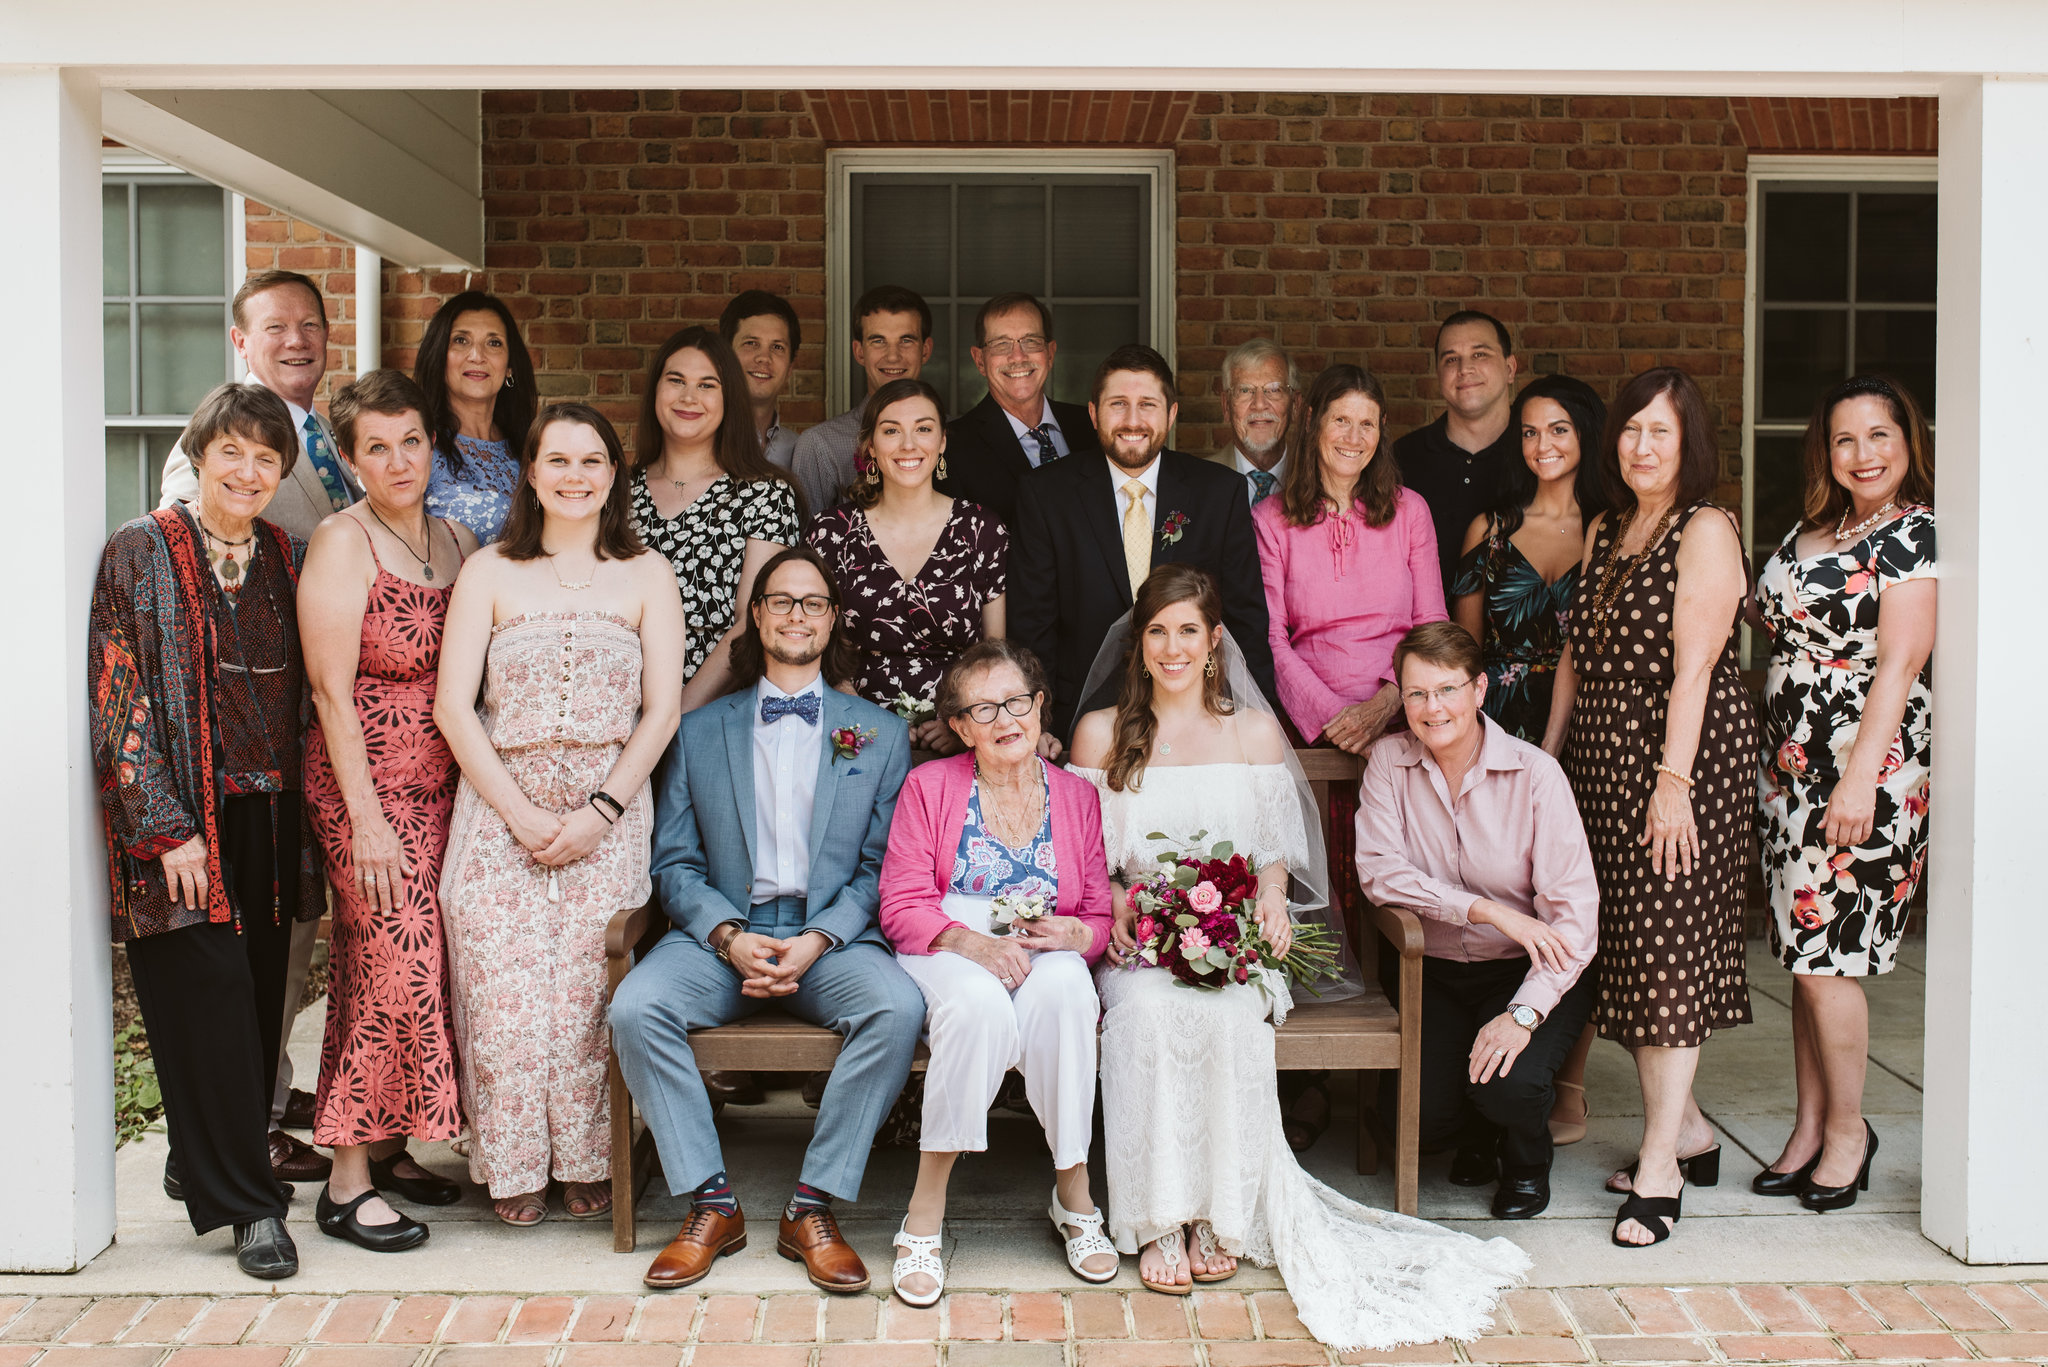 Annapolis, Quaker Wedding, Maryland Wedding Photographer, Intimate, Small Wedding, Vintage, DIY, Portrait of Entire Family, Bride and Groom with Family